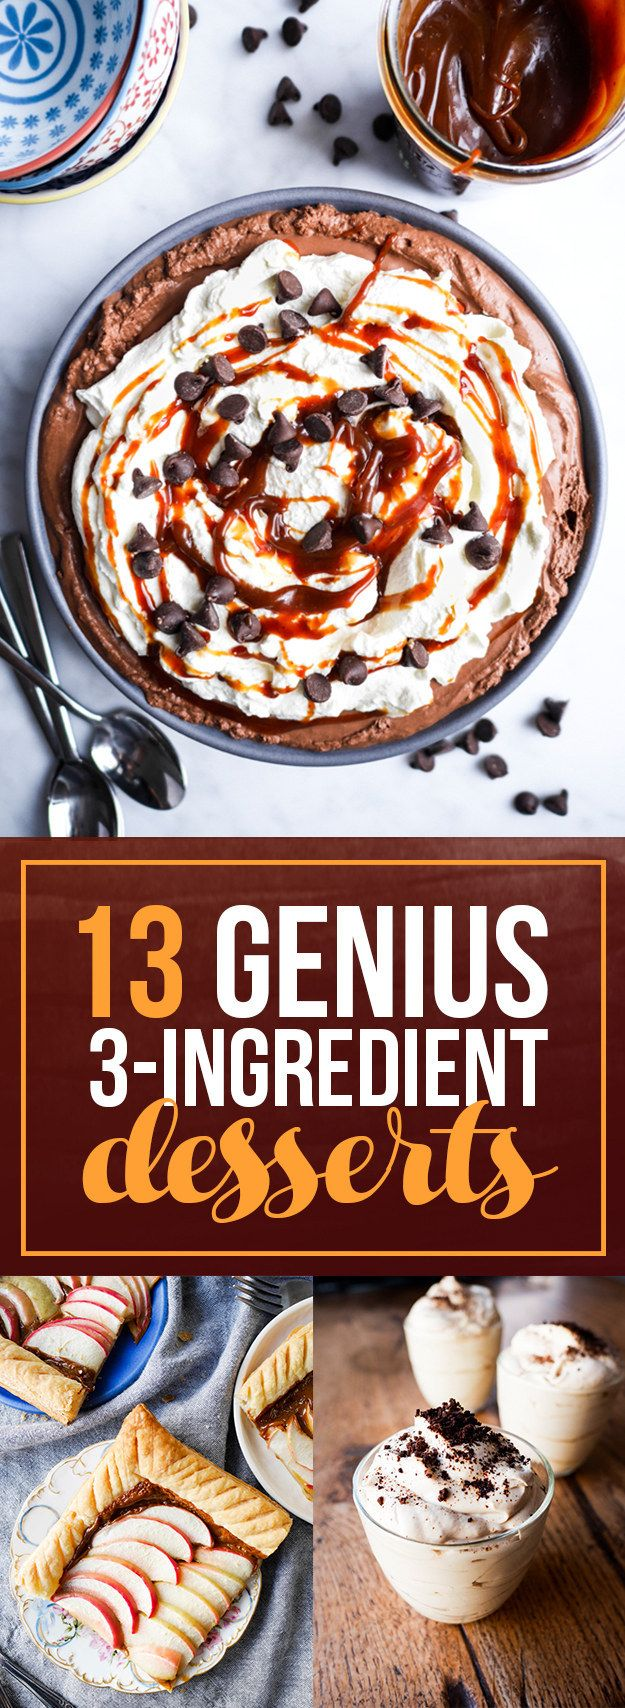 Desserts i could make | 13 Genius Three-Ingredient Desserts To Make For Thanksgiving